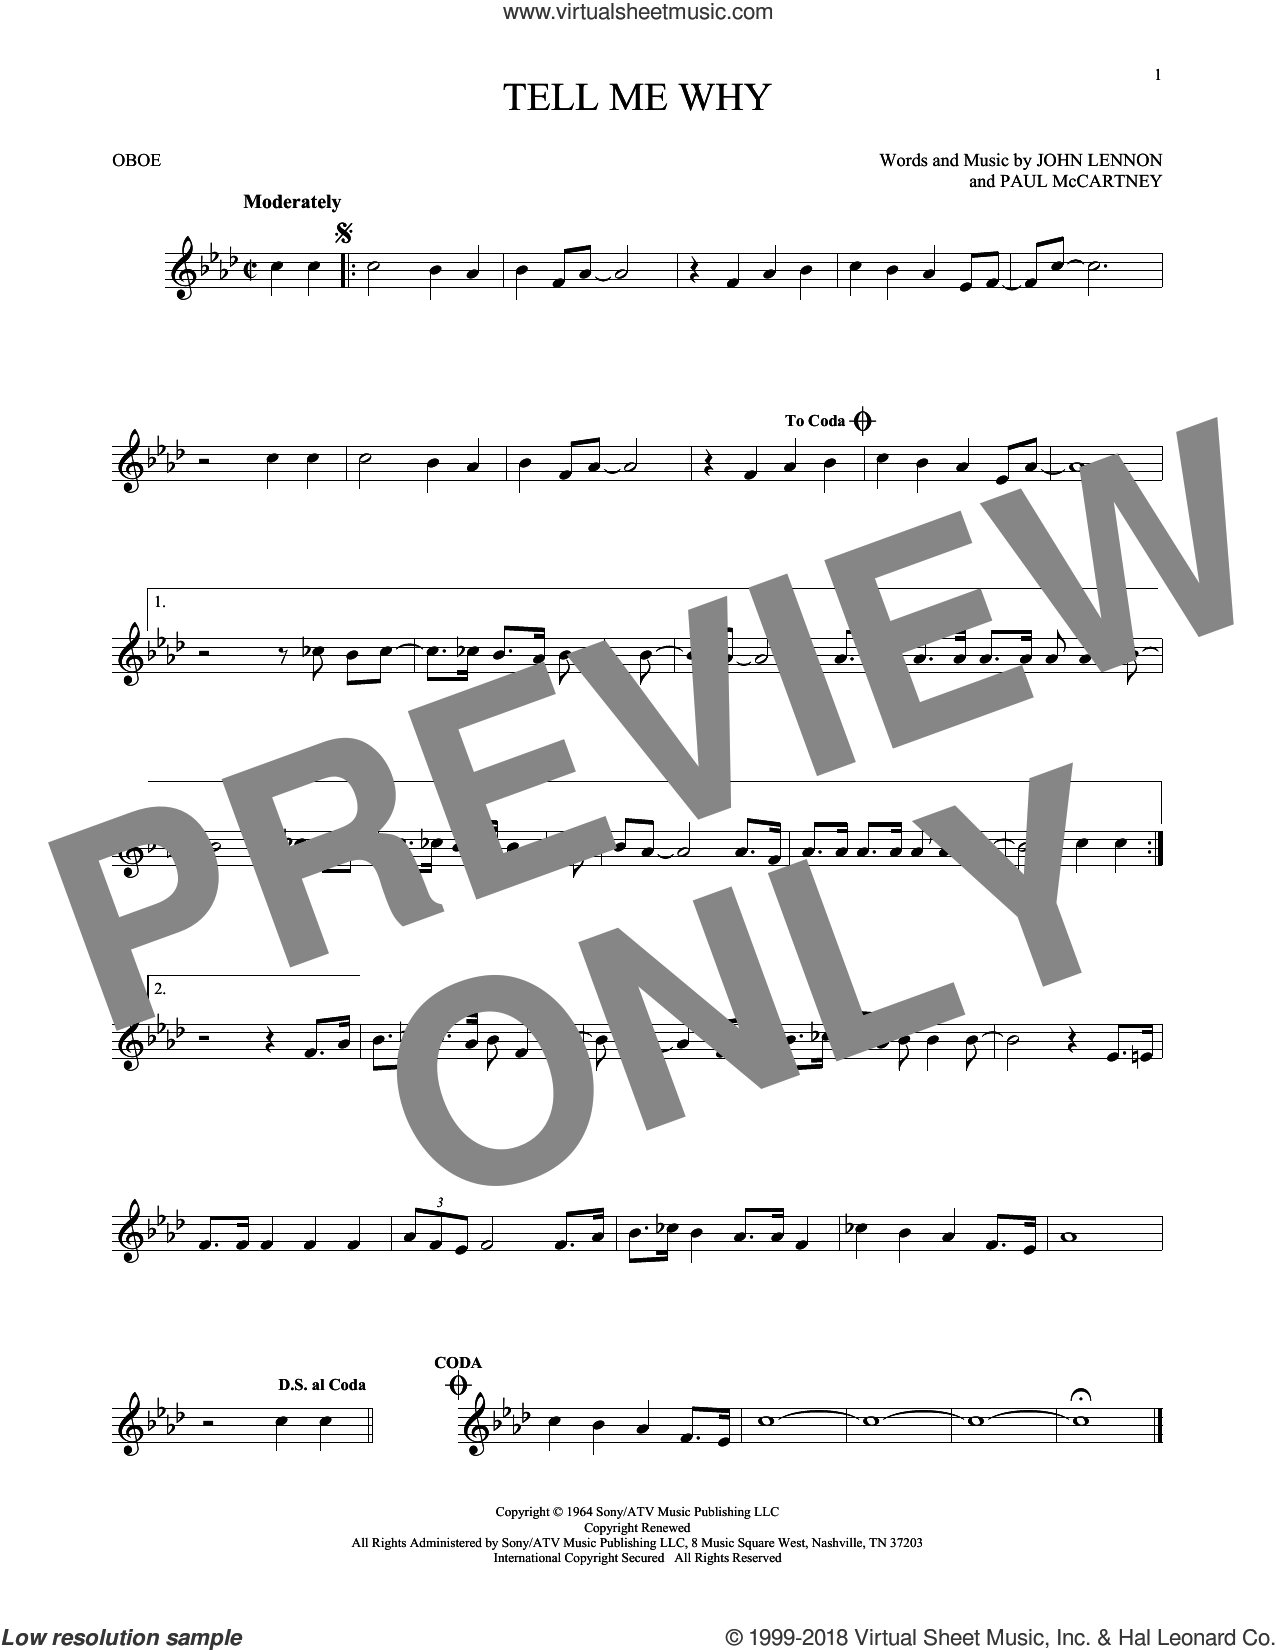 Tell Me Why sheet music for oboe solo by The Beatles, John Lennon and Paul McCartney, intermediate skill level